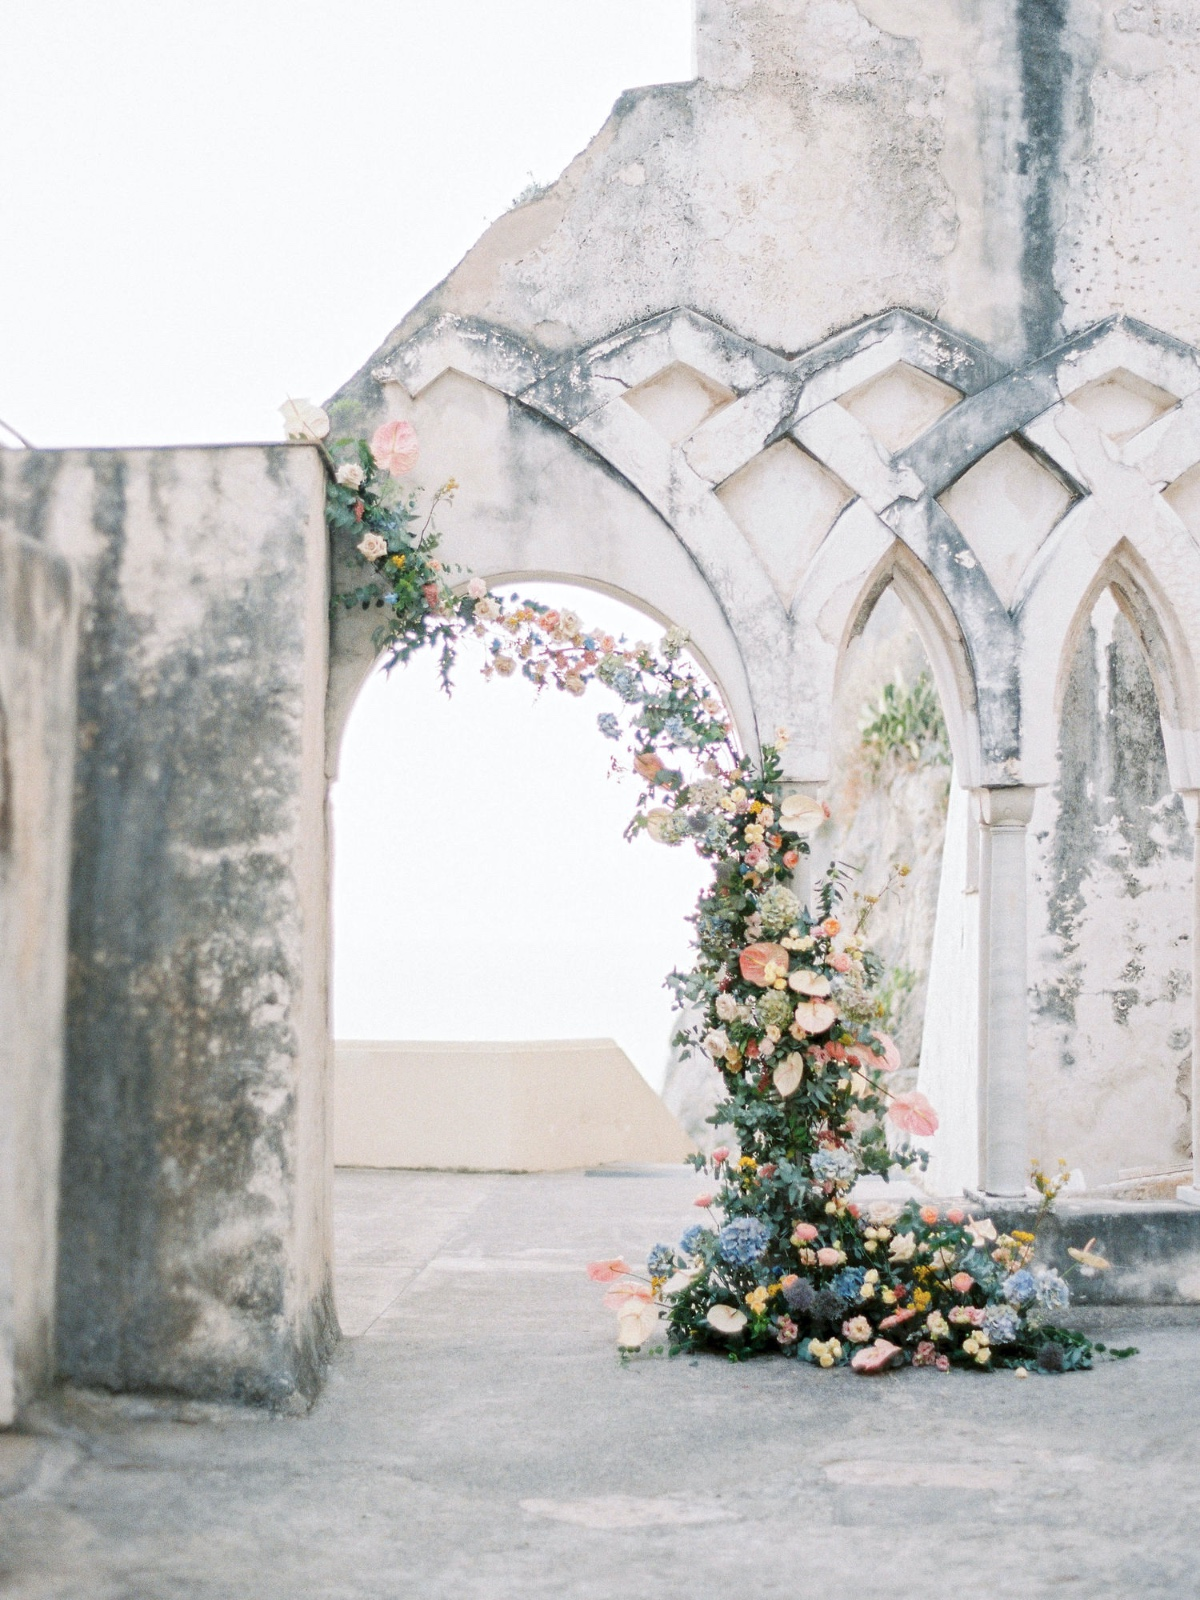 Breathtatking Blue and White Wedding On The Amalfi Coast